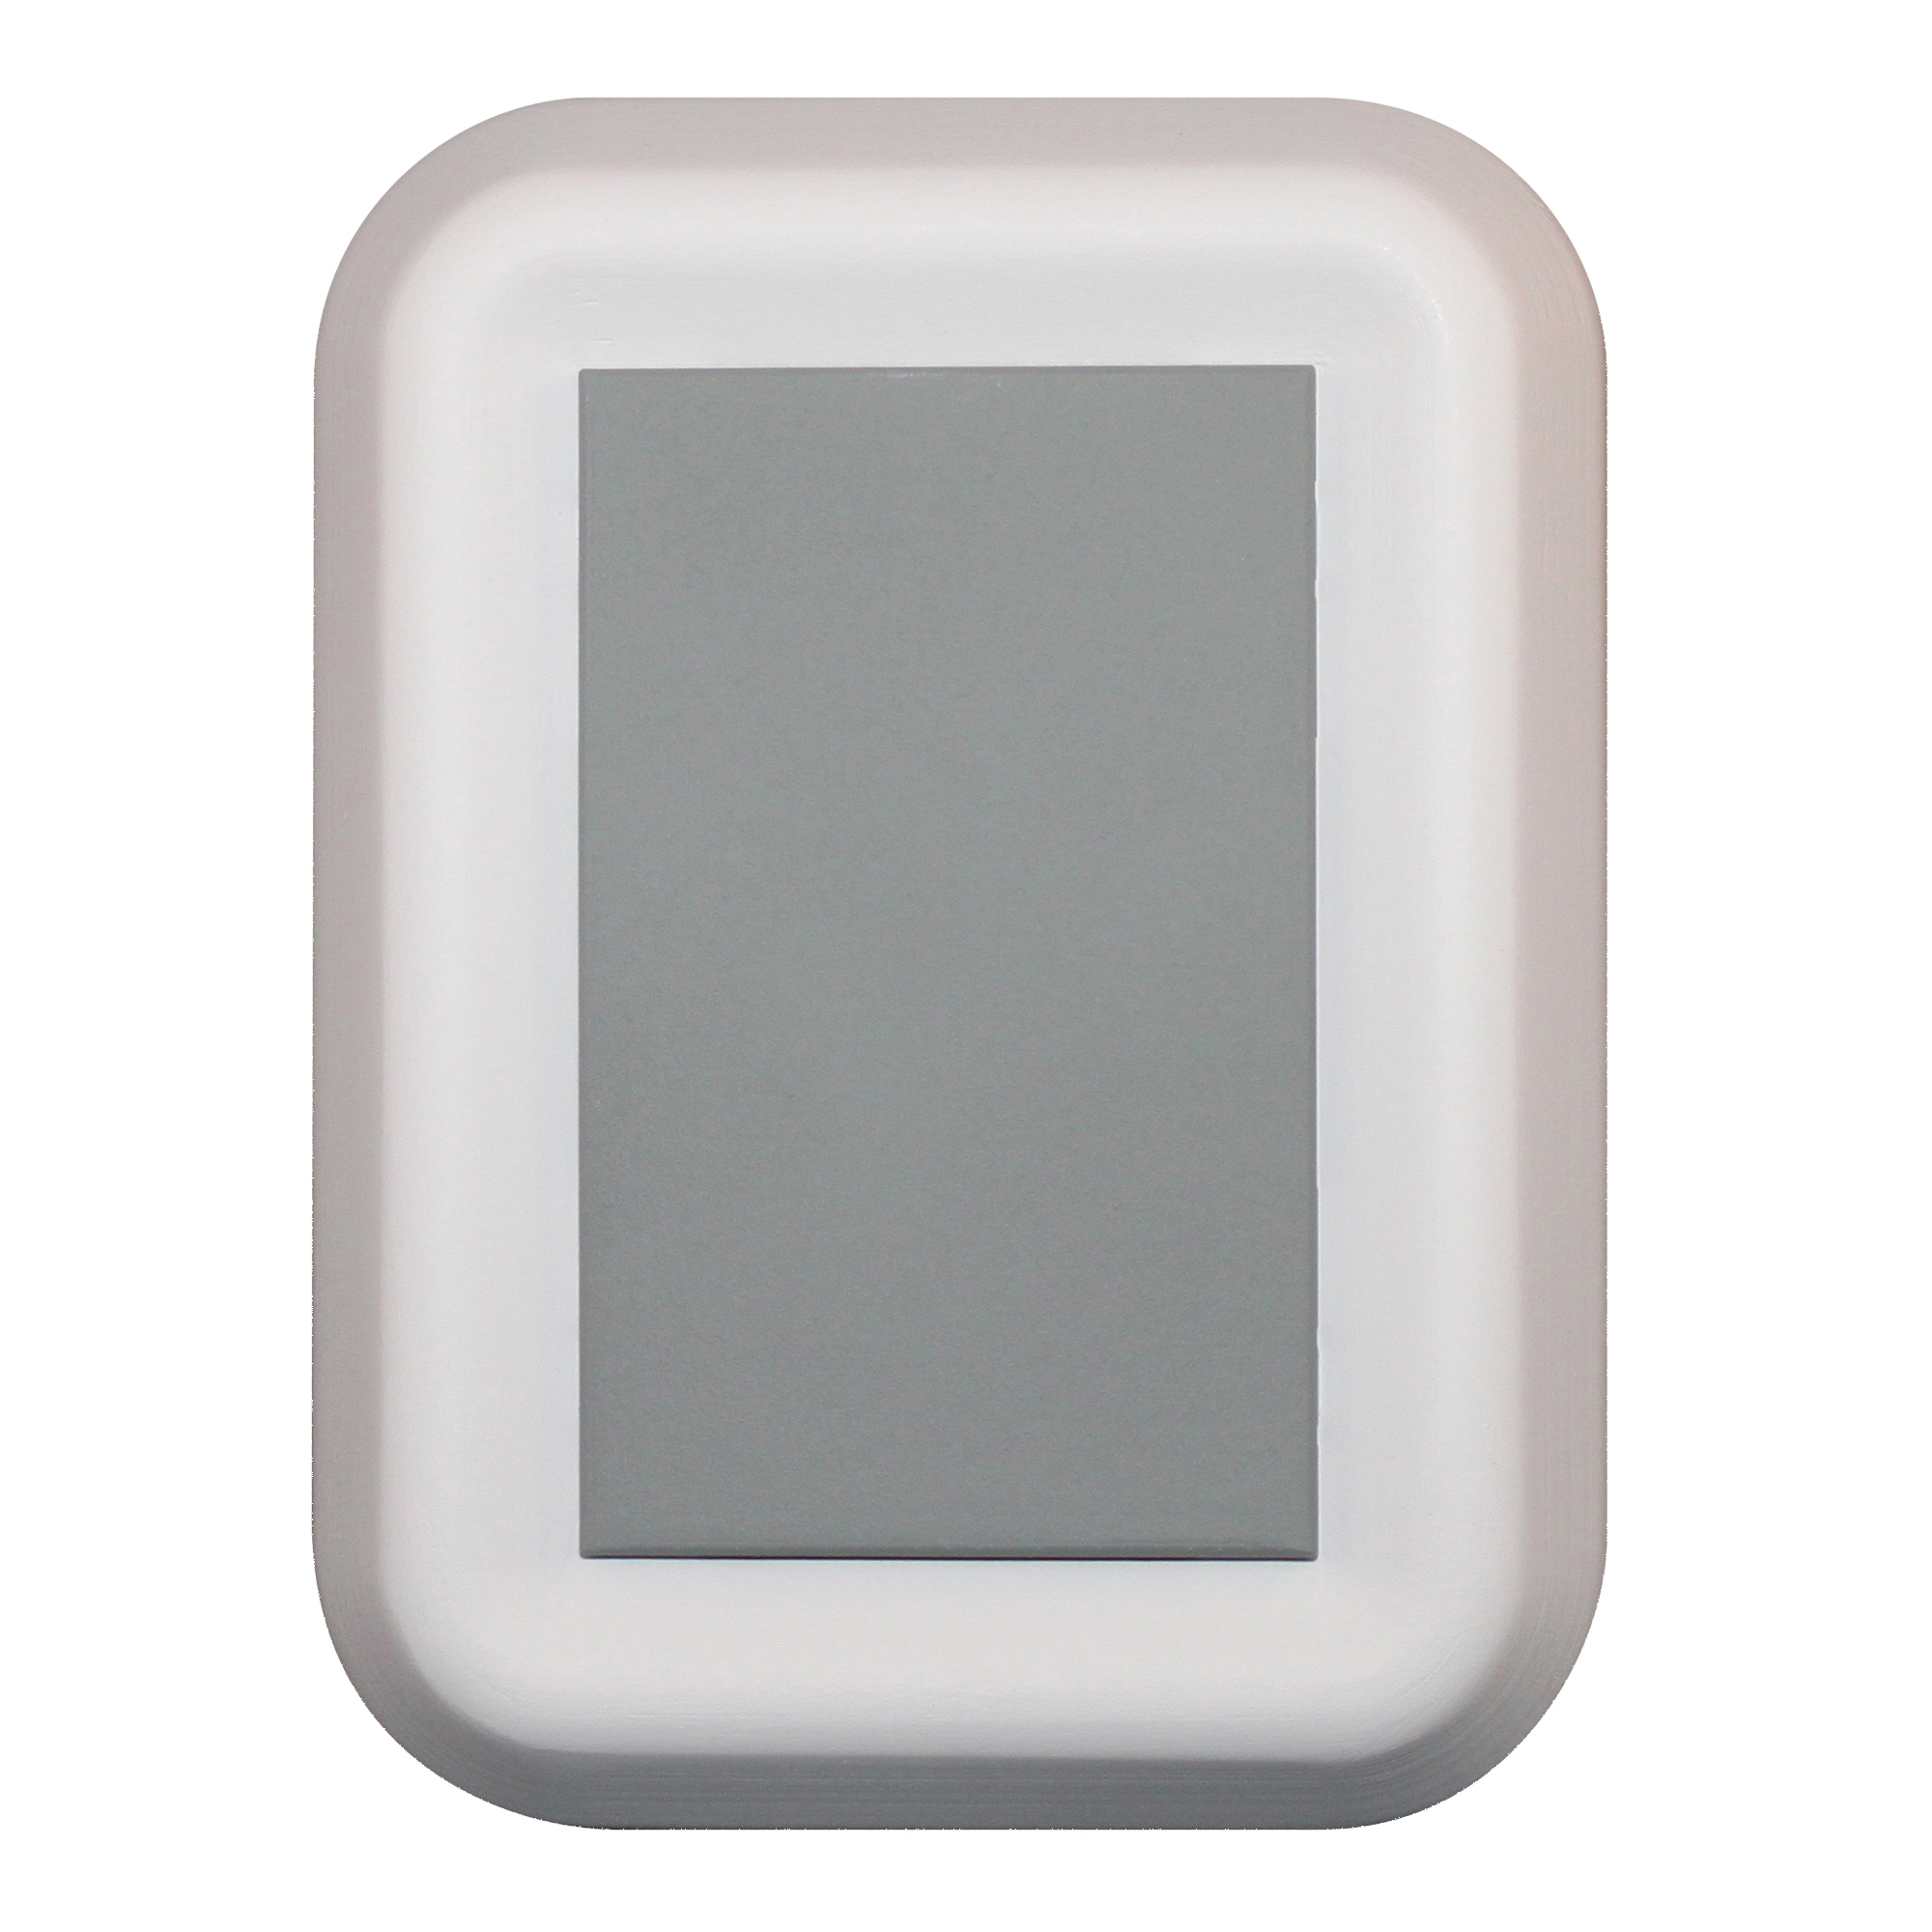 Picture of Heath Zenith SL-7745-02 Doorbell Kit, Ding, Ding-Dong Tone, 75 dB, Cool Gray/White